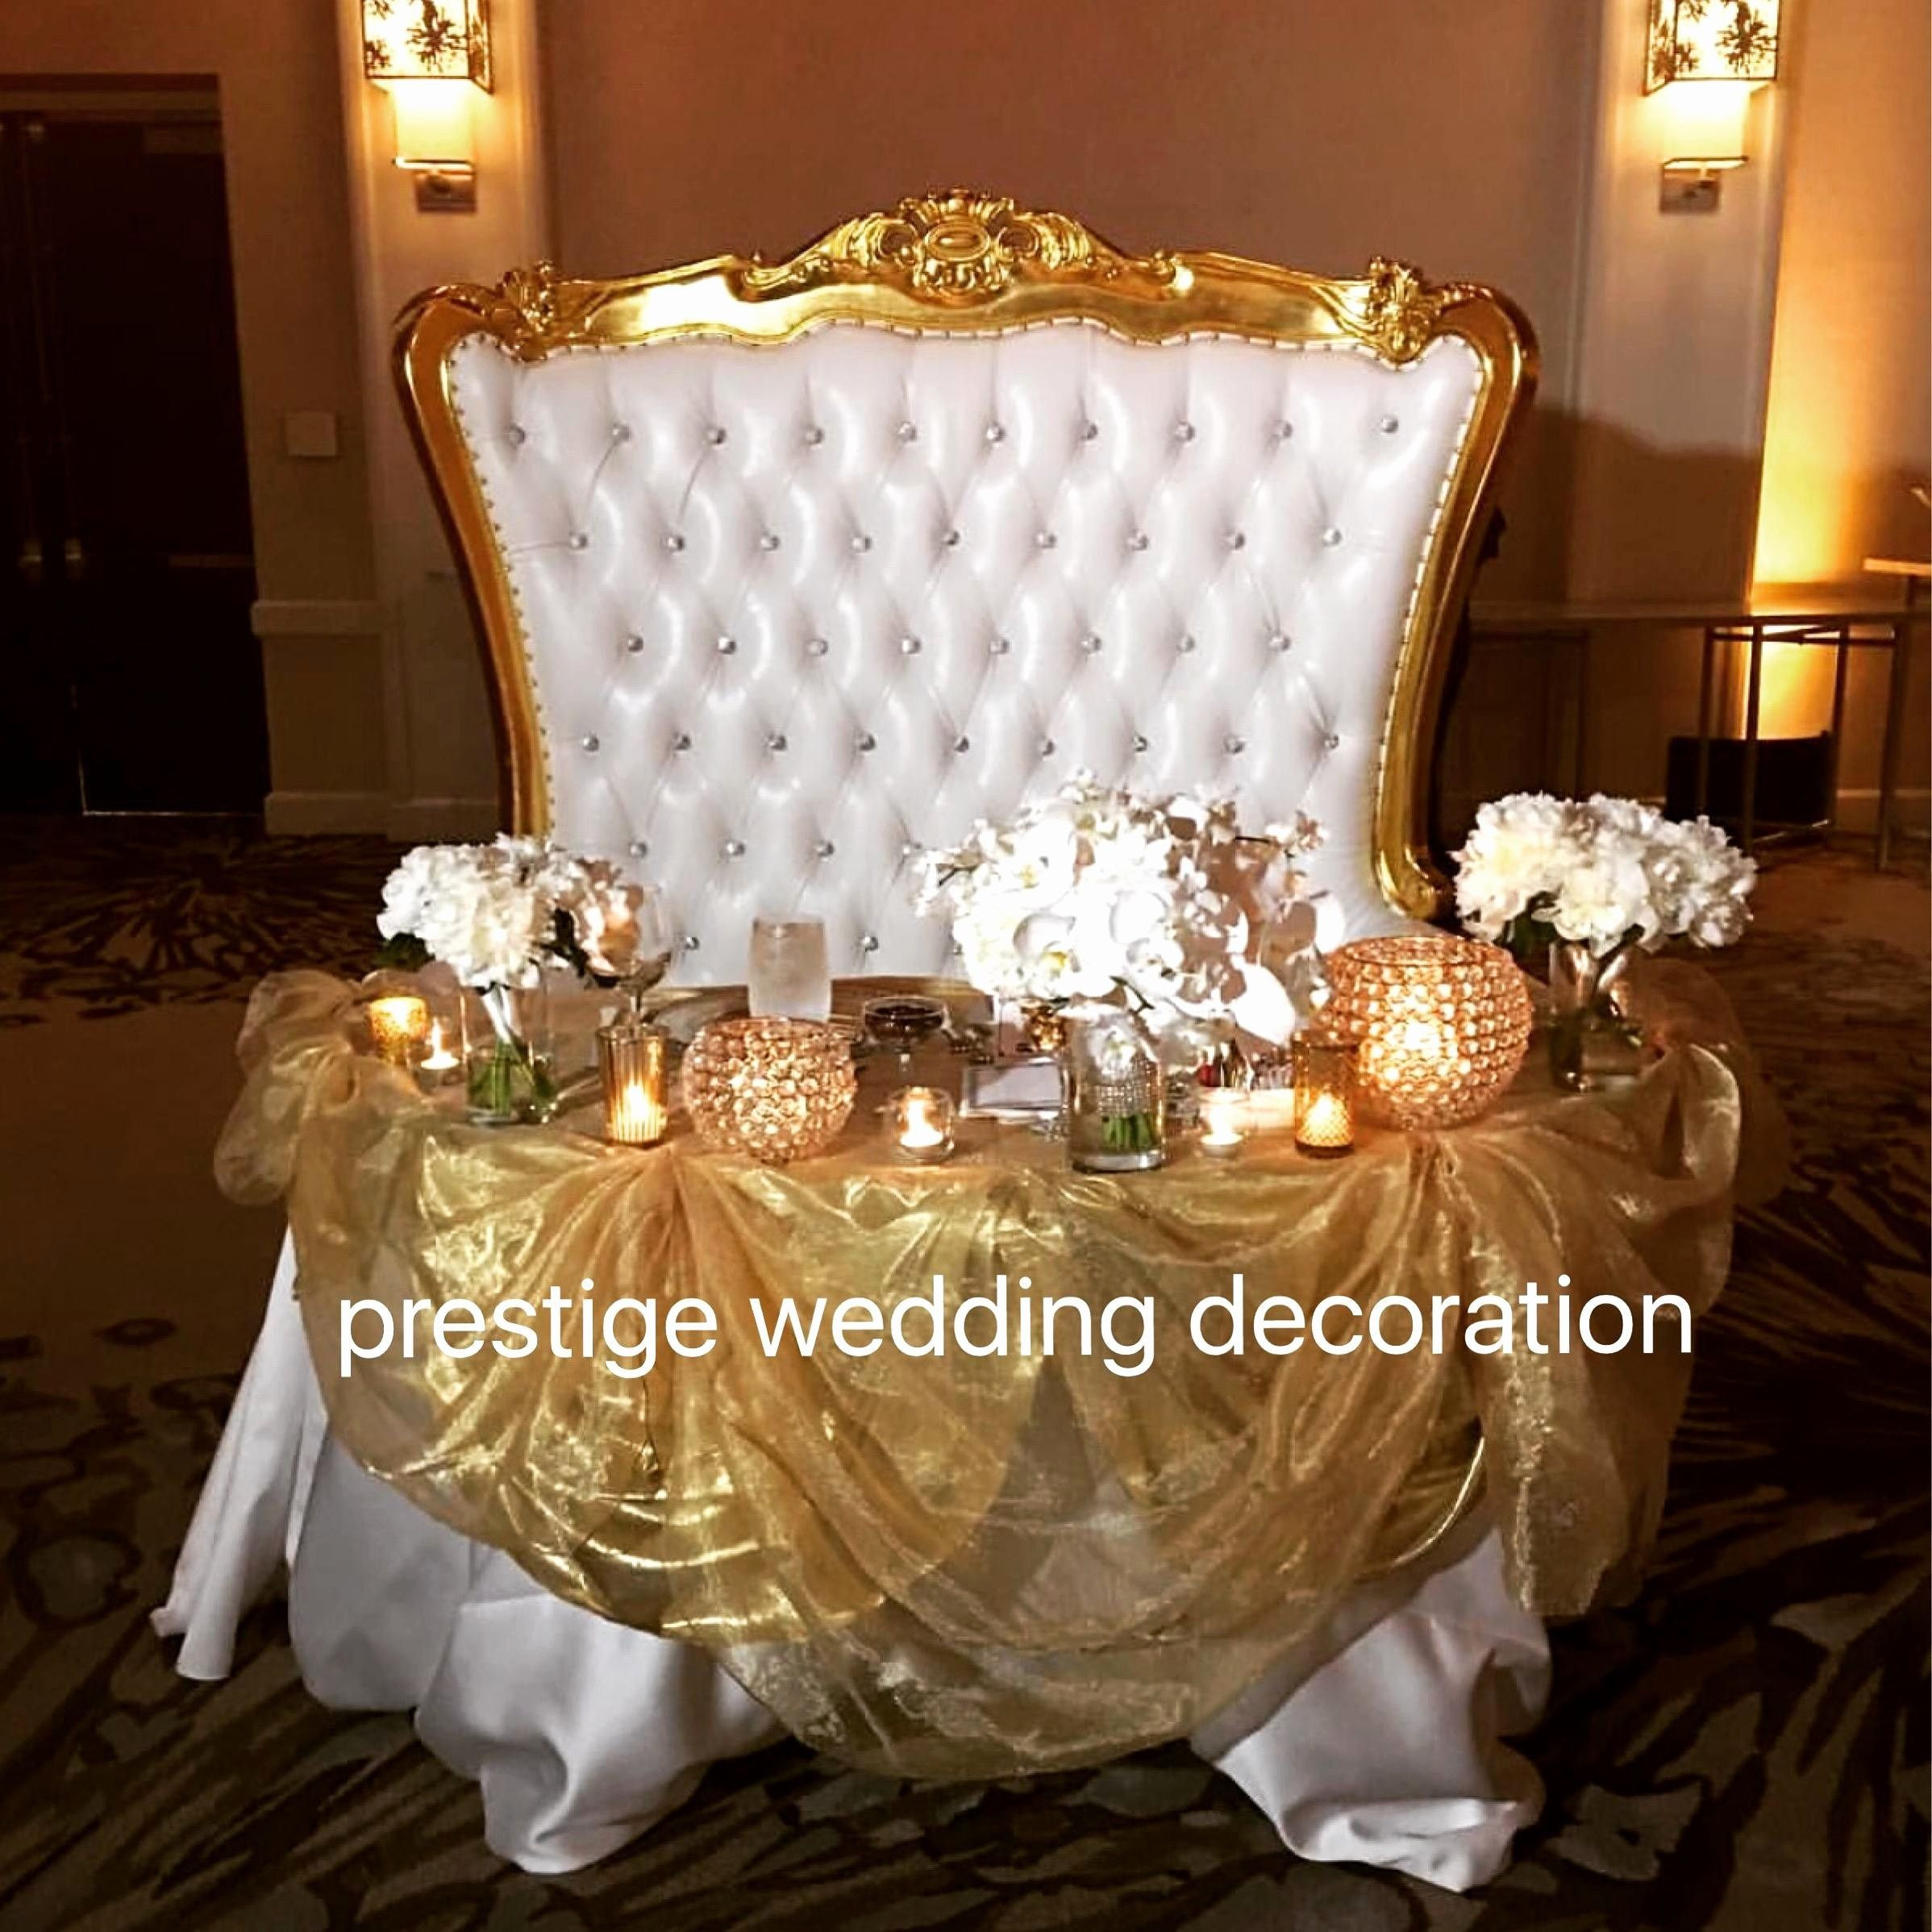 12 Amazing Decorative Floor Vase Fillers 2021 free download decorative floor vase fillers of 30 pearl vase fillers the weekly world for wedding entrance ideas elegant wedding decor by q events wedding